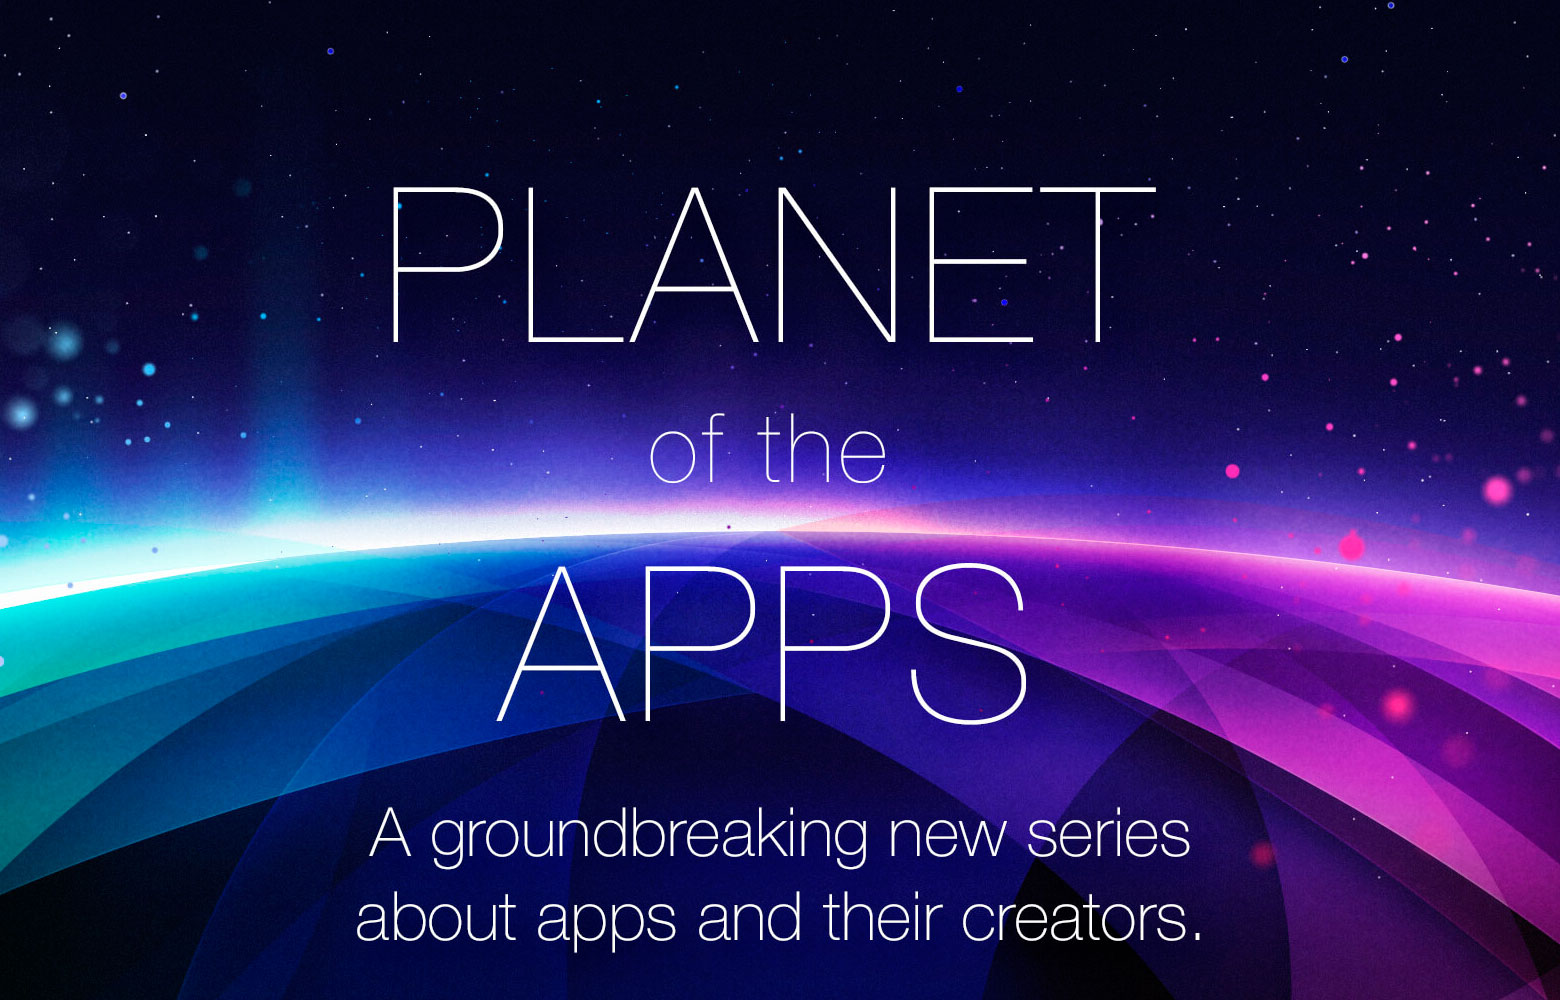 planet-of-apps-primer-reality-apple-cartel